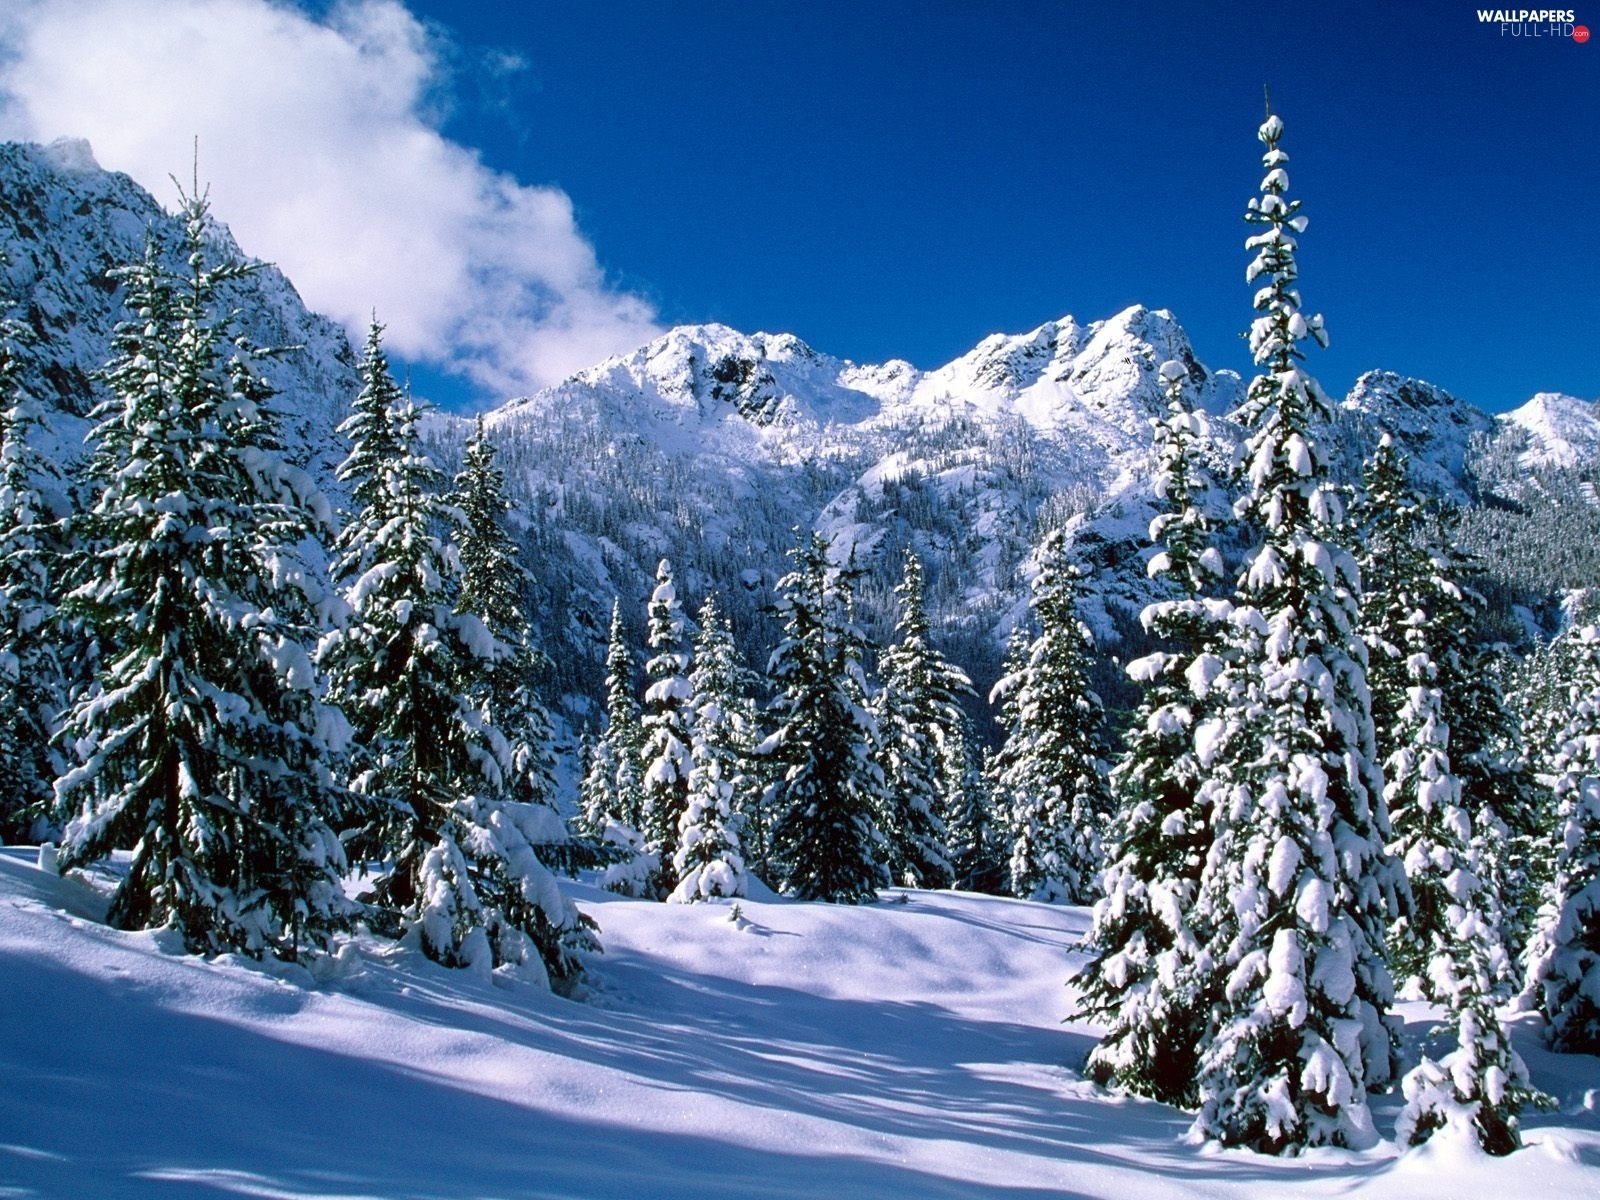 Mountains, viewes, snowy, snow, trees